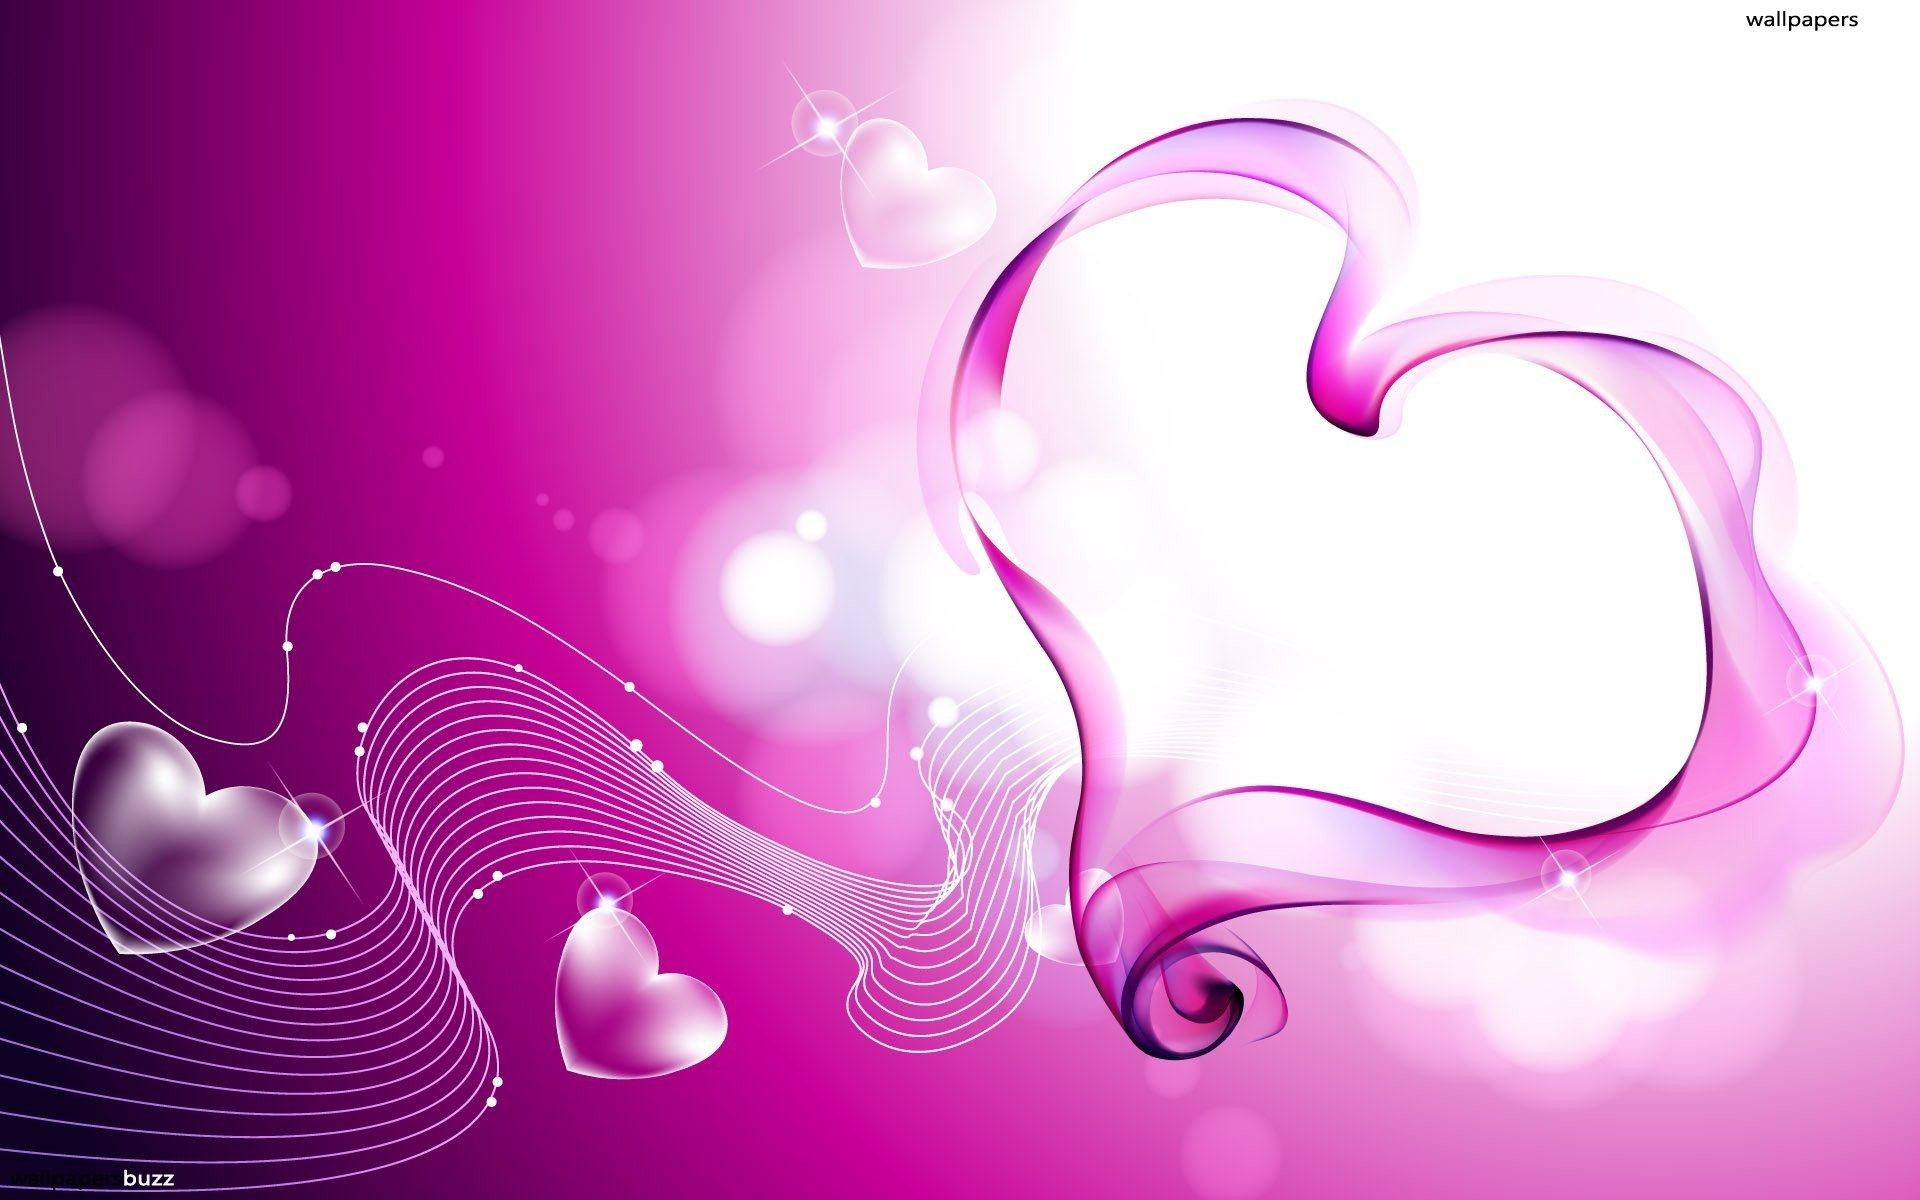 Wallpapers Backgrounds – heart pink abstract background fantasy valantines  wallpaper